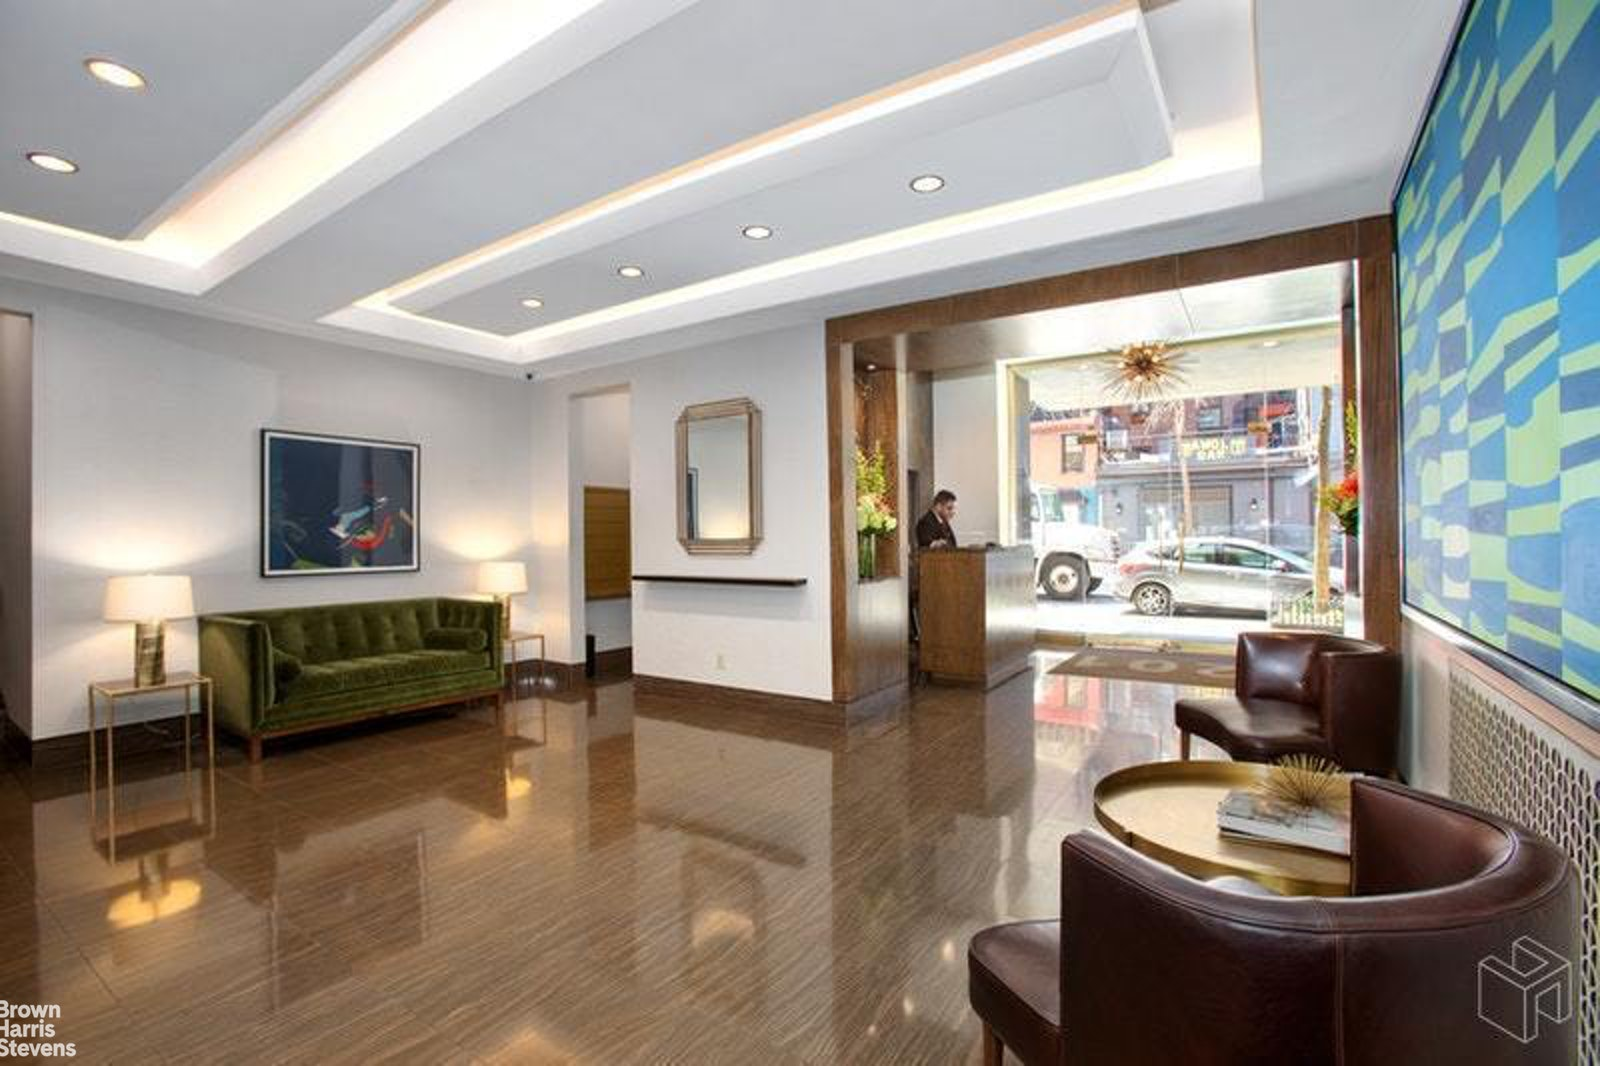 201 East 25th Street 14k, Gramercy Park, NYC, 10010, $500,000, Property For Sale, Halstead Real Estate, Photo 6